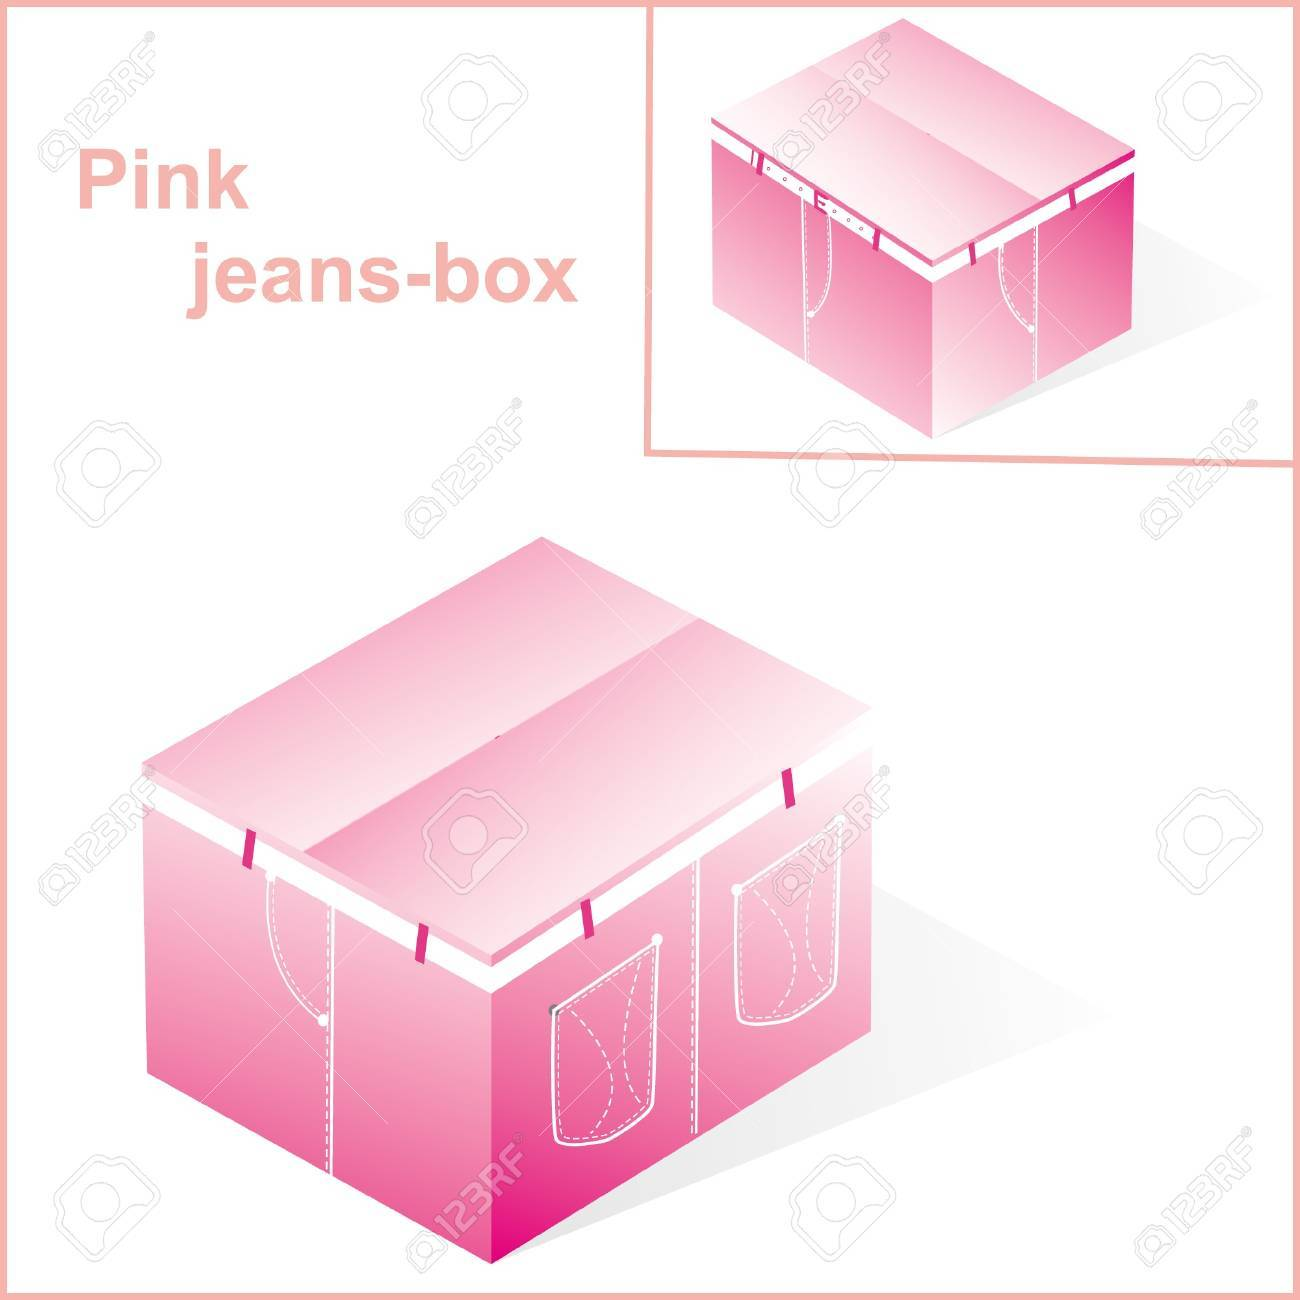 box, cardboard  for pink jeans or pants packing, with denim lines style, closed Stock Vector - 15354262